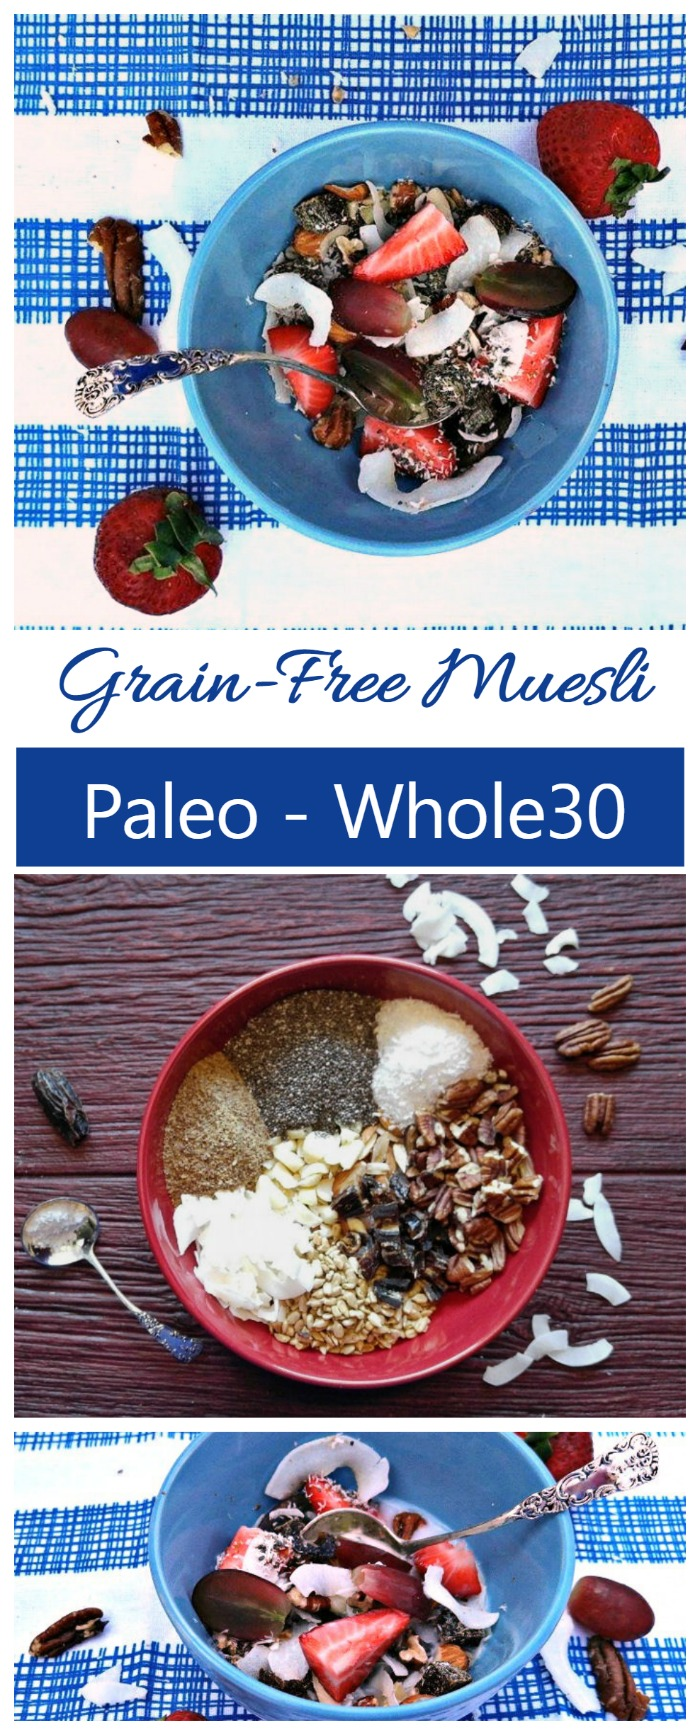 This grain free muesli is free of added sugars and packs a nutritious morning breakfast for those busy days when there is no time for a cooked breakfast.